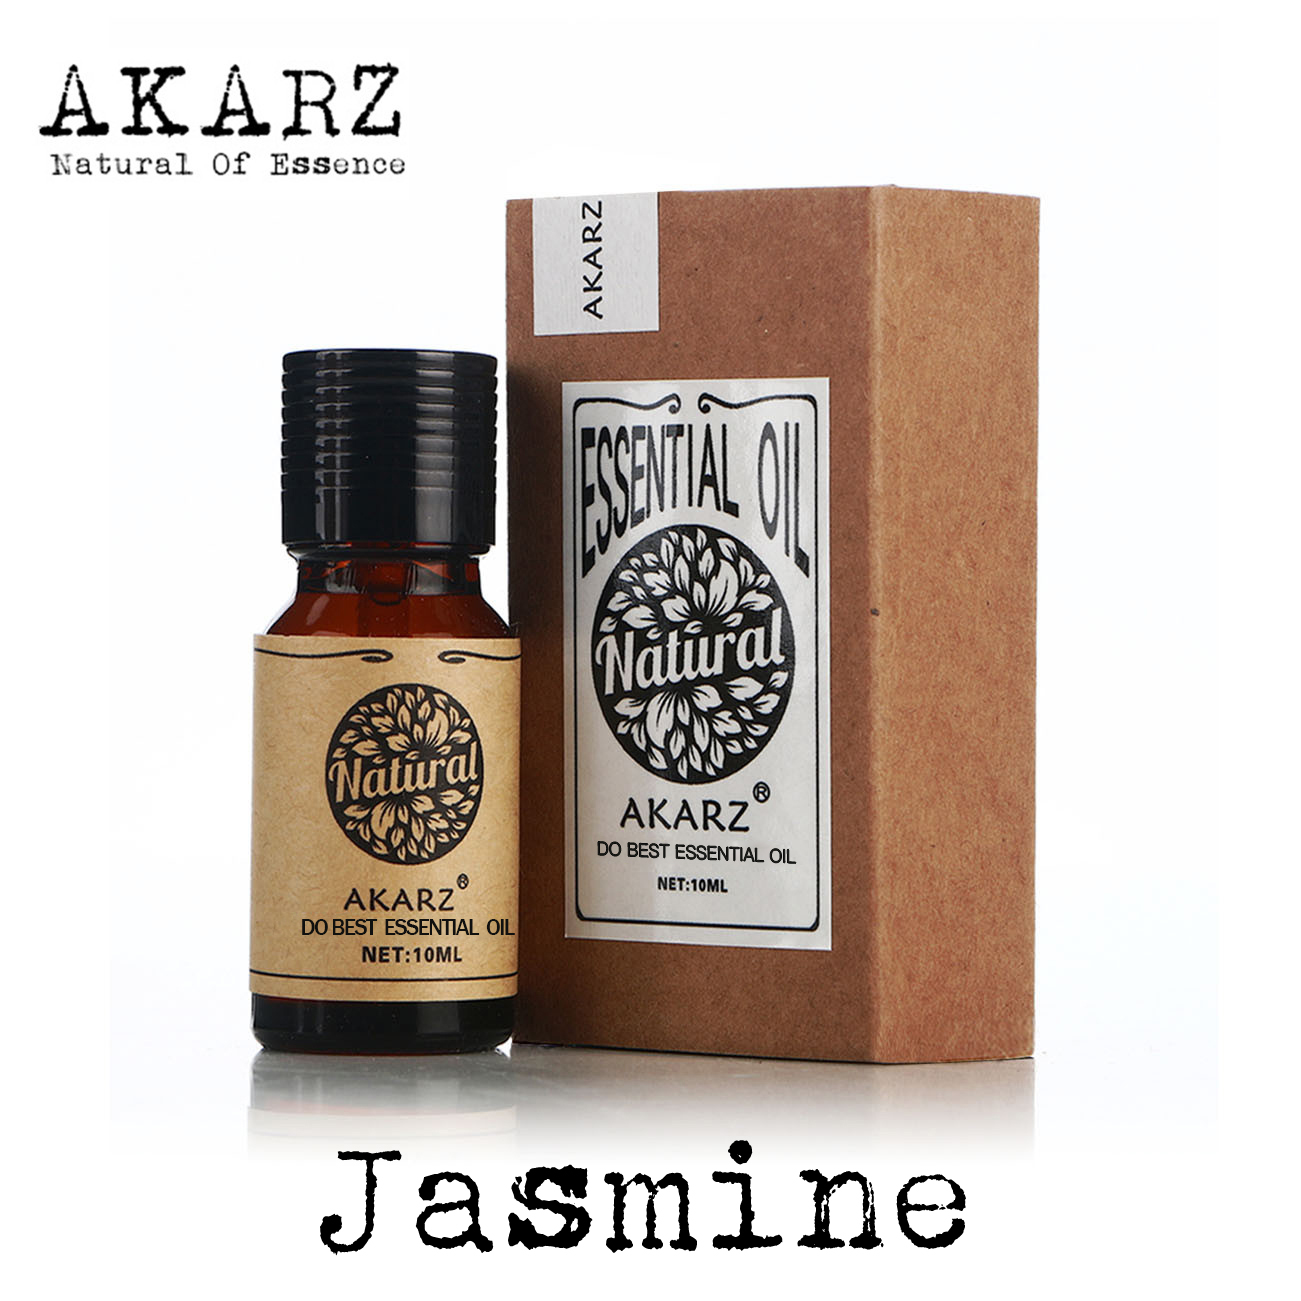 jasmine essential oil AKARZ brand natural Oiliness Cosmetics Candle Soap Scents Making DIY odorant raw material jasmine oil цена